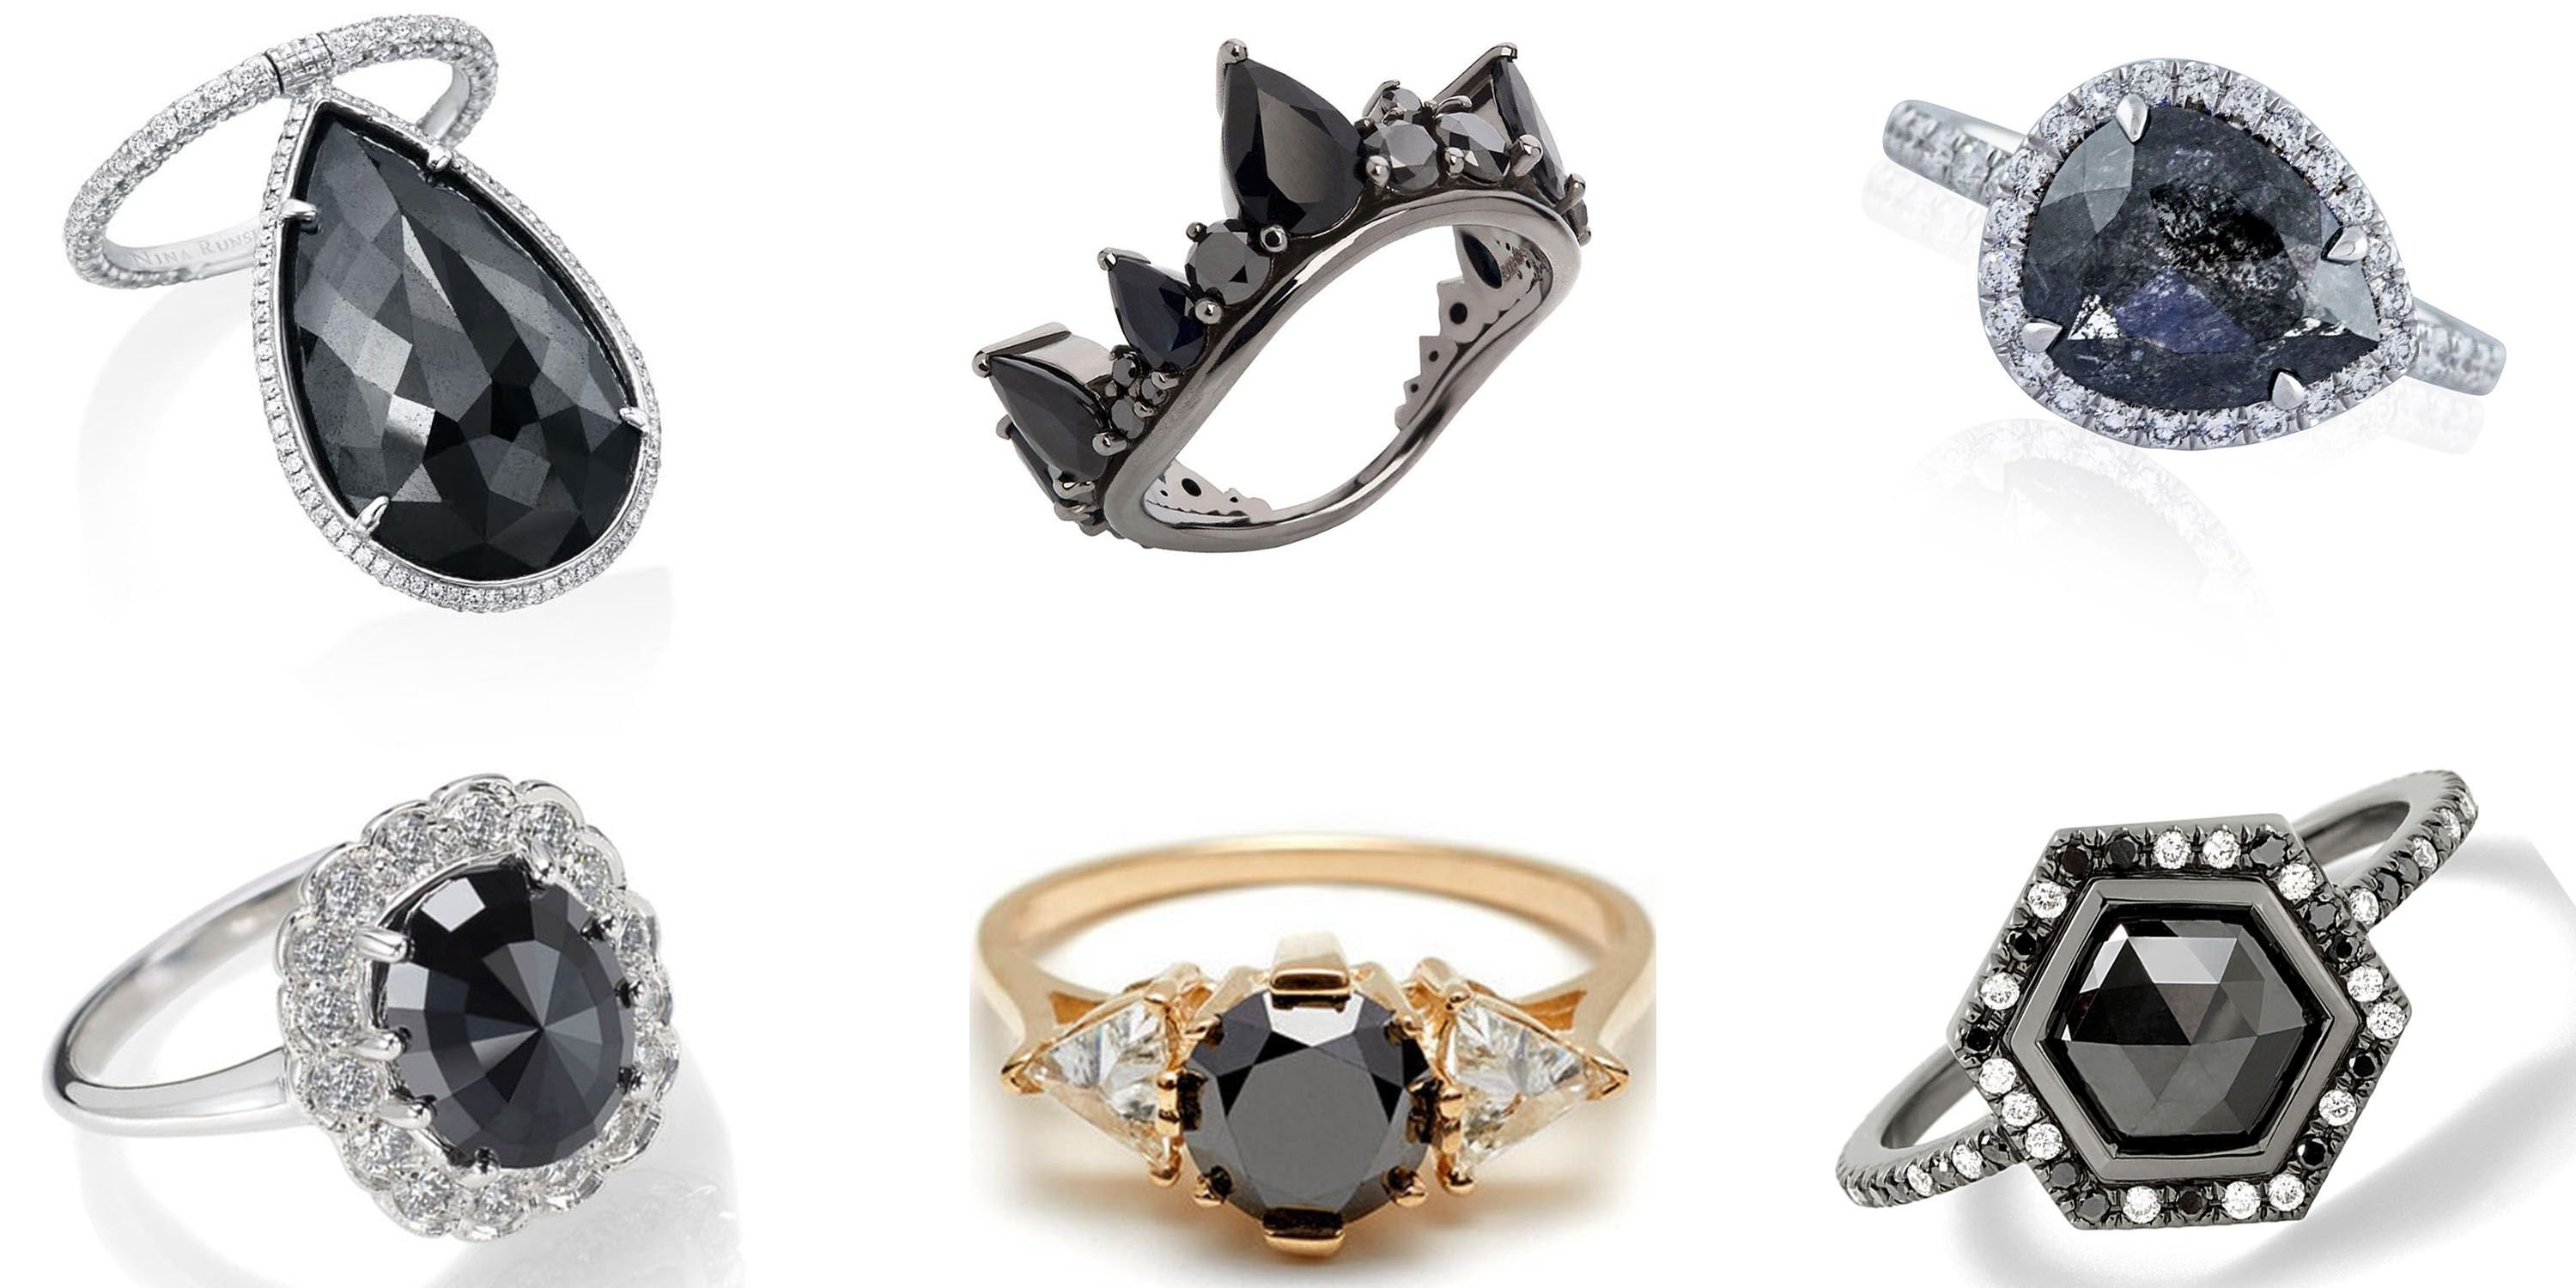 Black Diamond Rings Are The Carrie Bradshaw Of Engagement